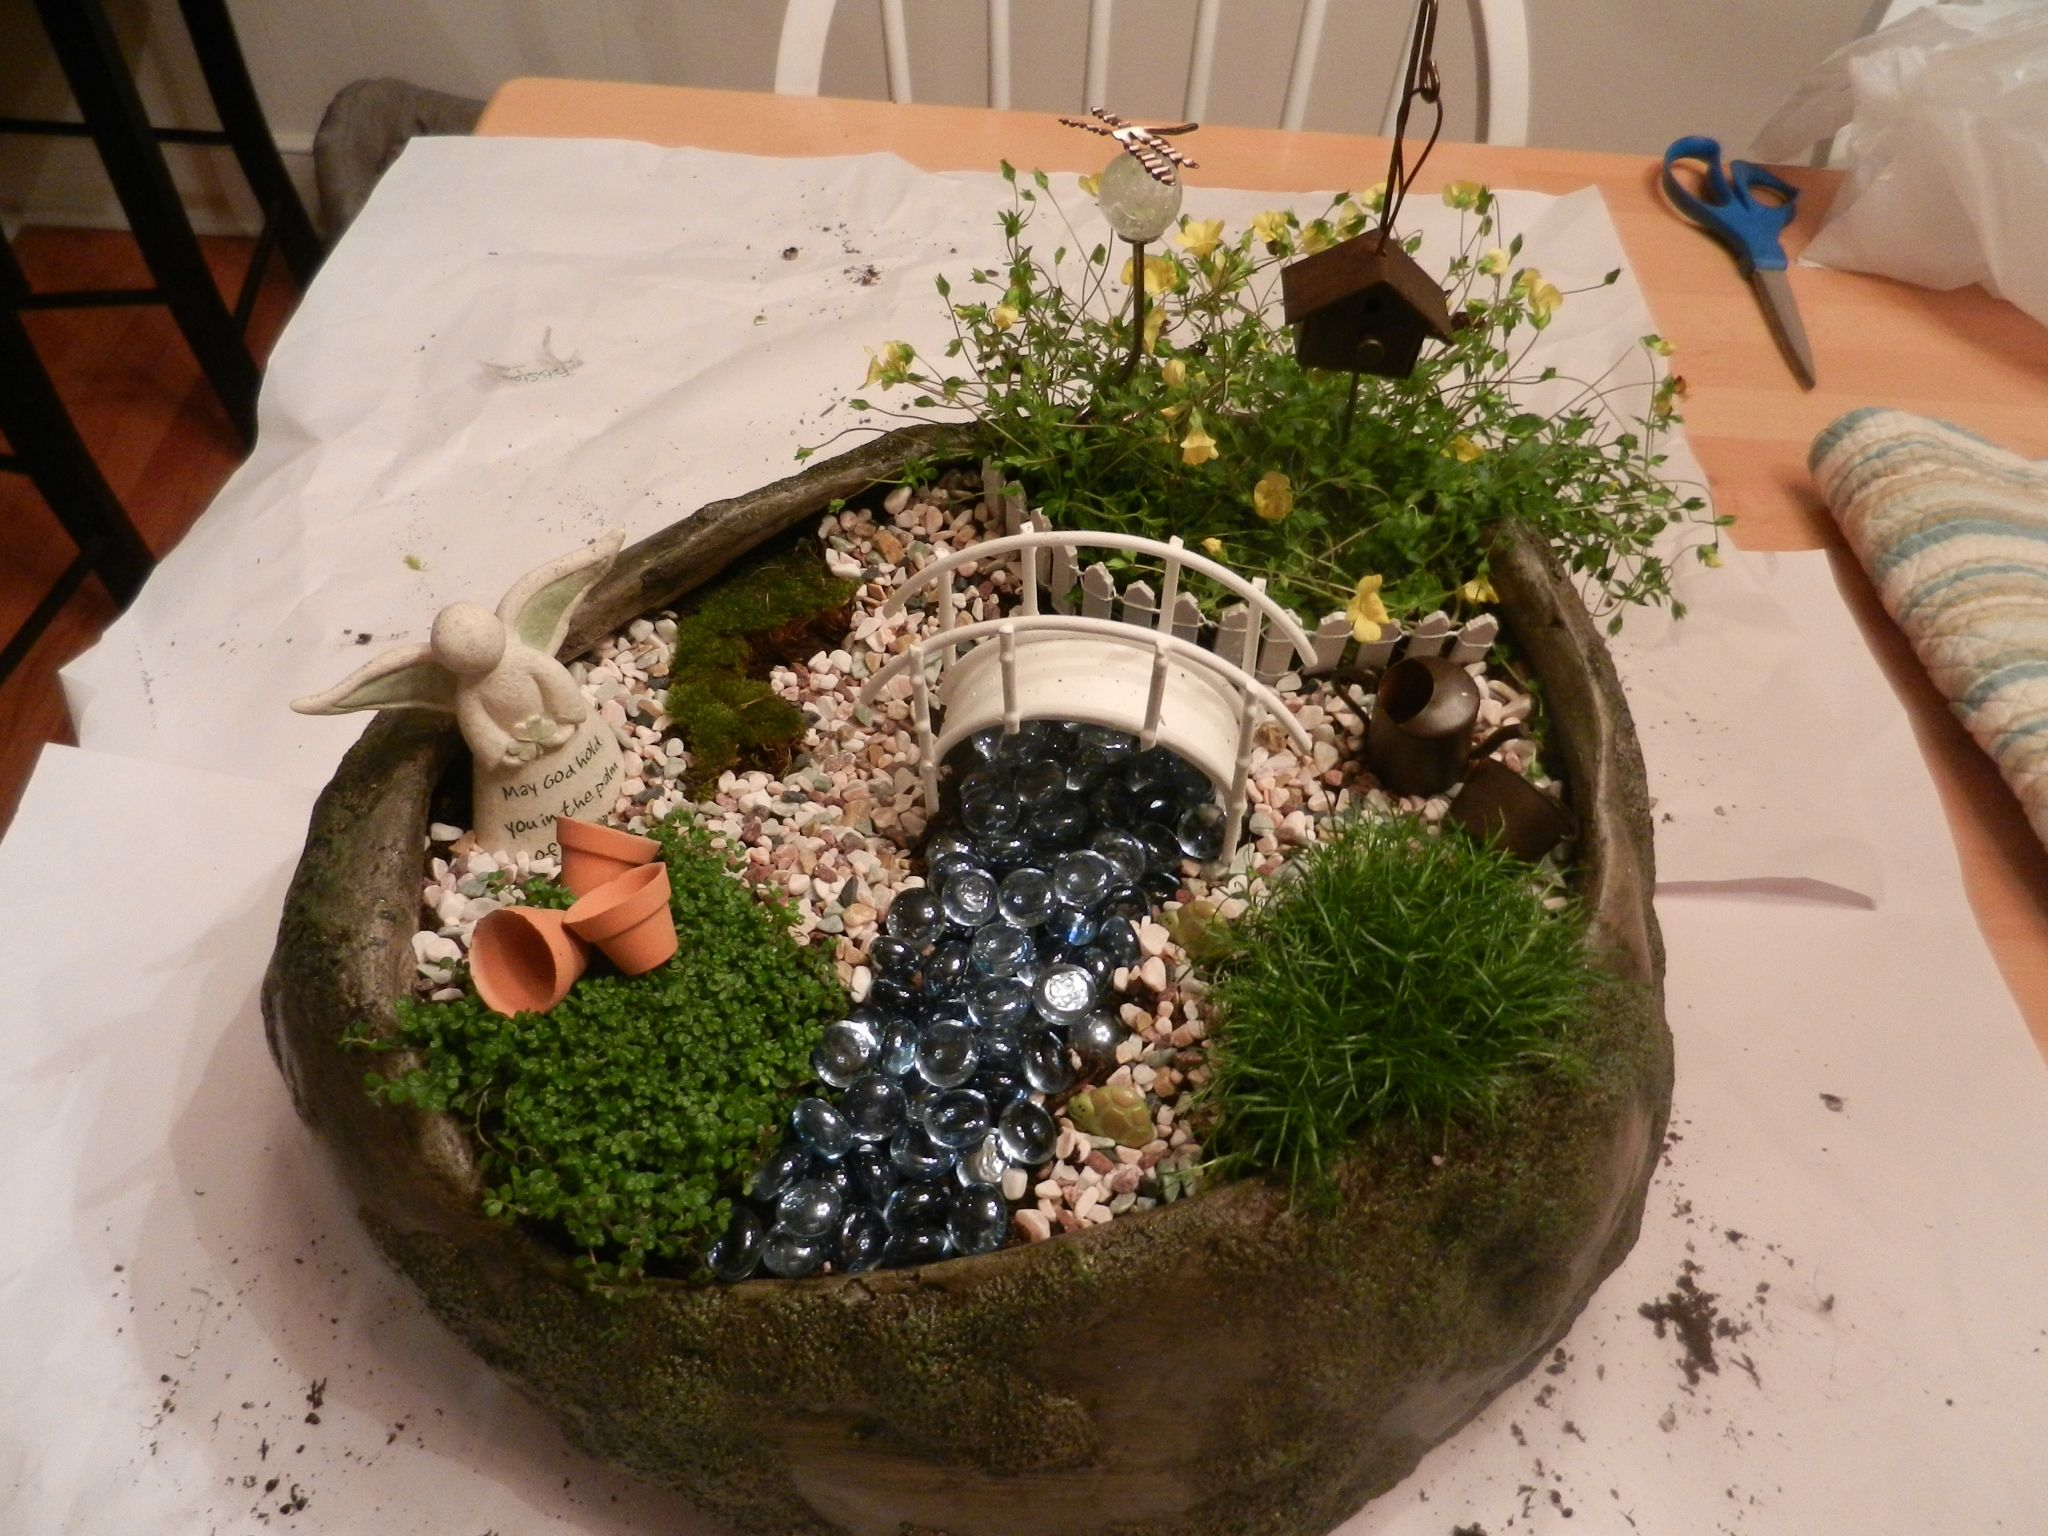 Fairy garden crafts pinterest for Craft ideas for fairy gardens